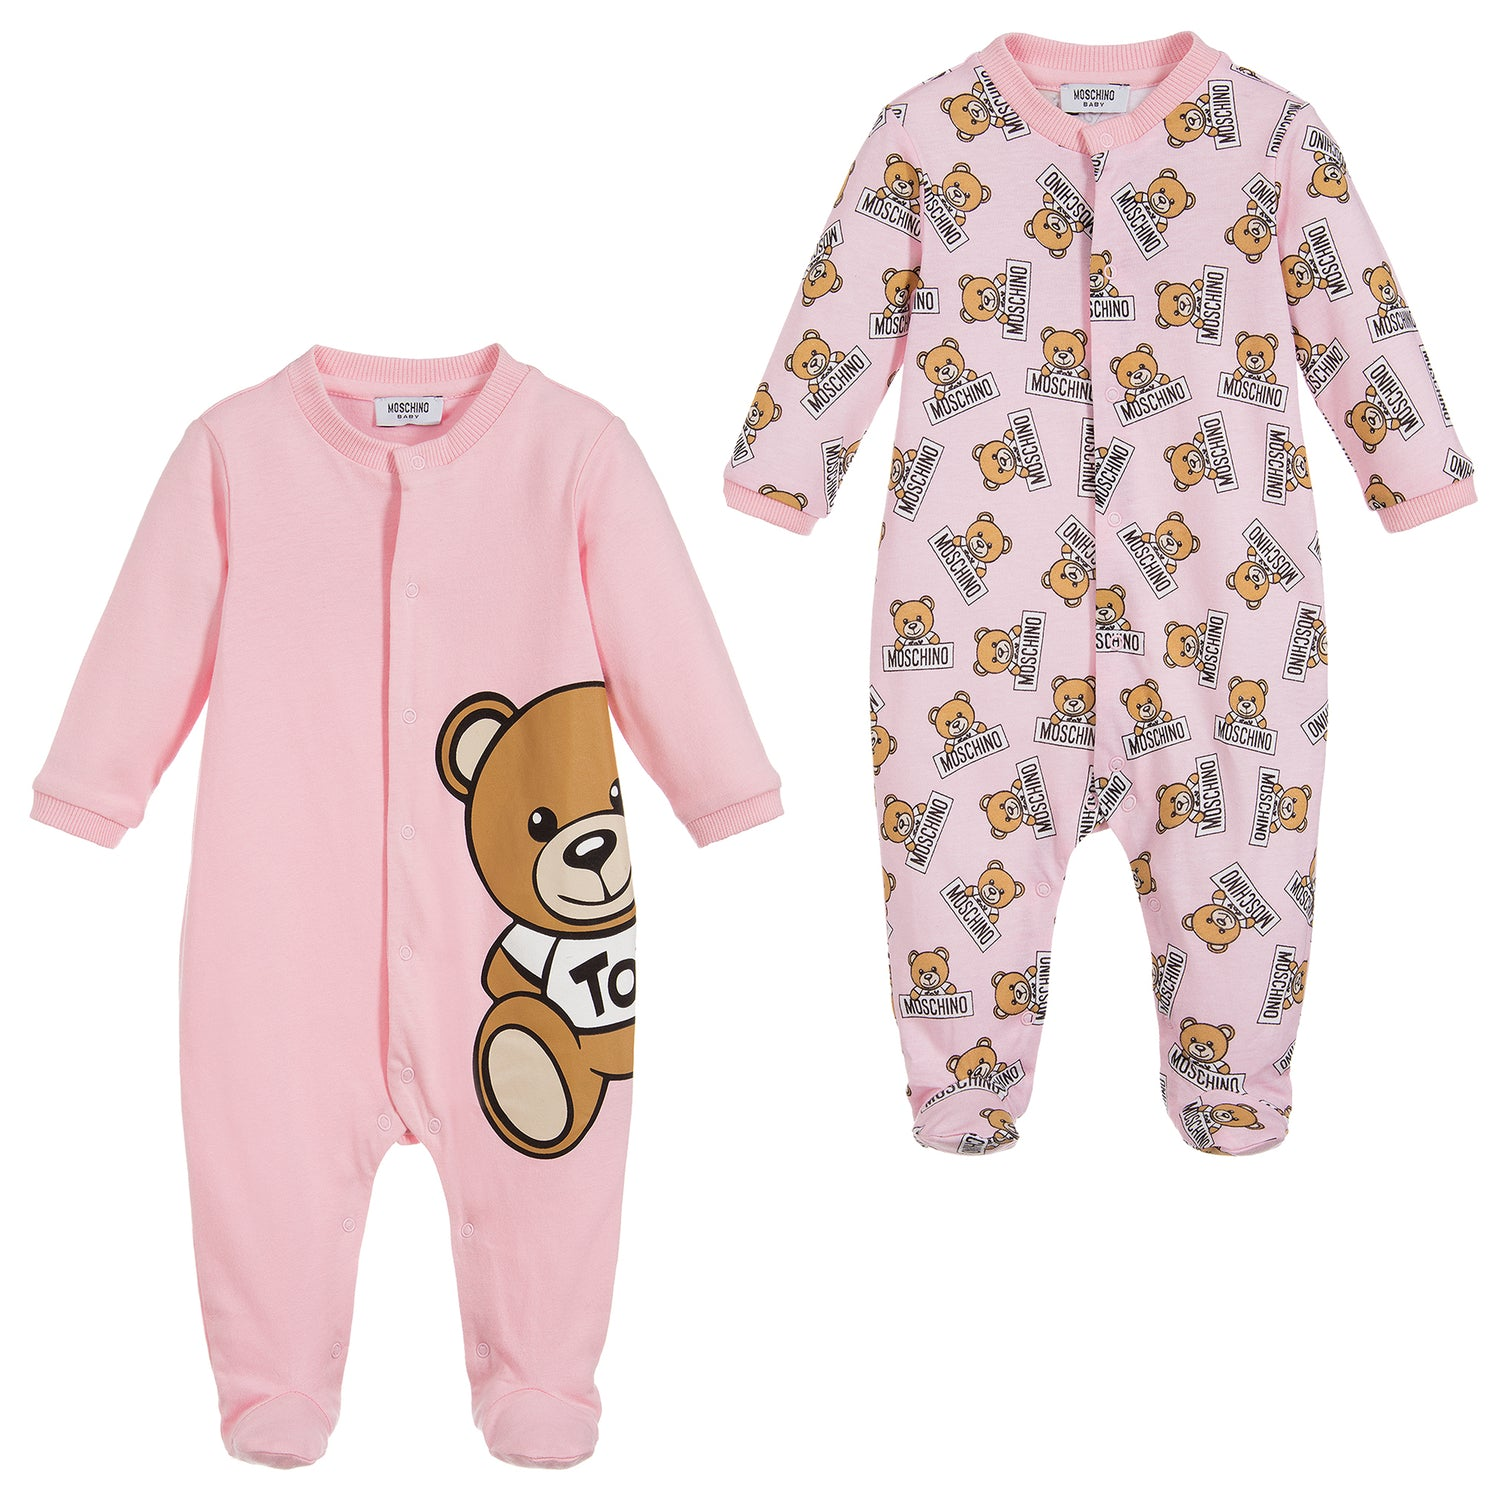 8b40c2fb1f9a5 Moschino Baby Girls Pink Romper Two Piece Gift Set – Petit New York